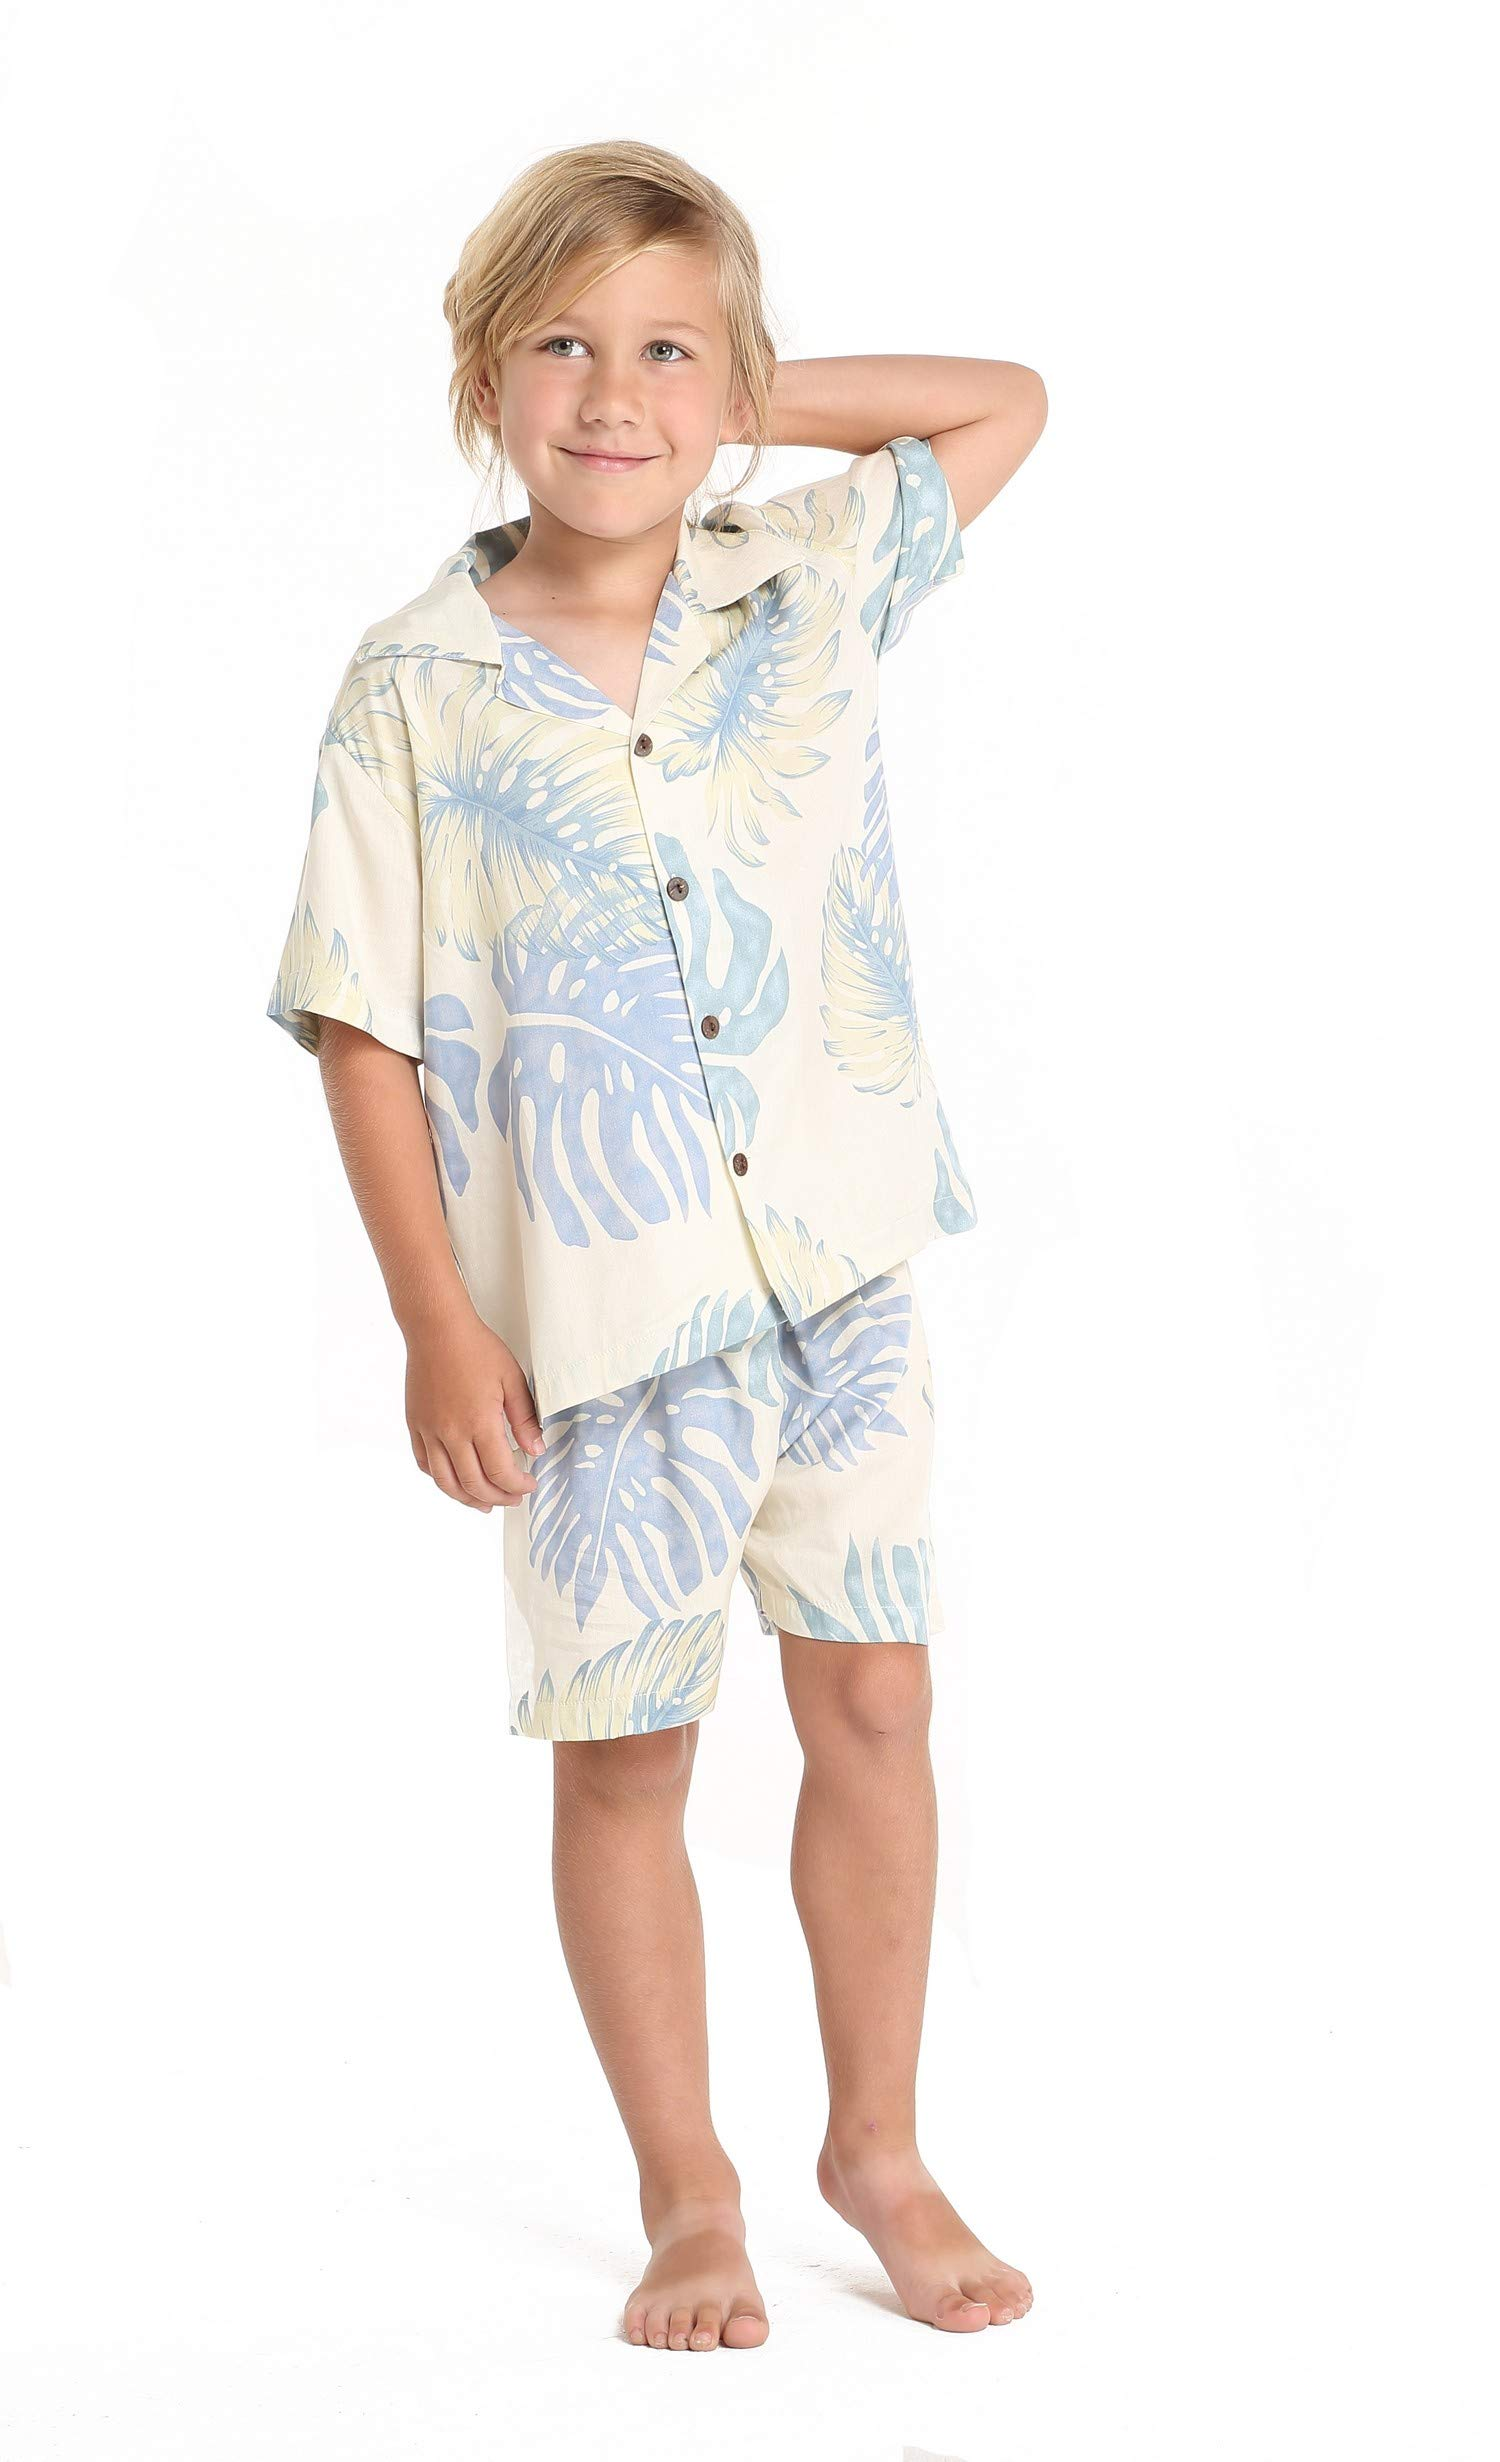 Matching Mother Son Hawaiian Luau Outfit Poncho Dress Shirt in Palm Leaves Cream Women One Size Boy 8 by Hawaii Hangover (Image #2)